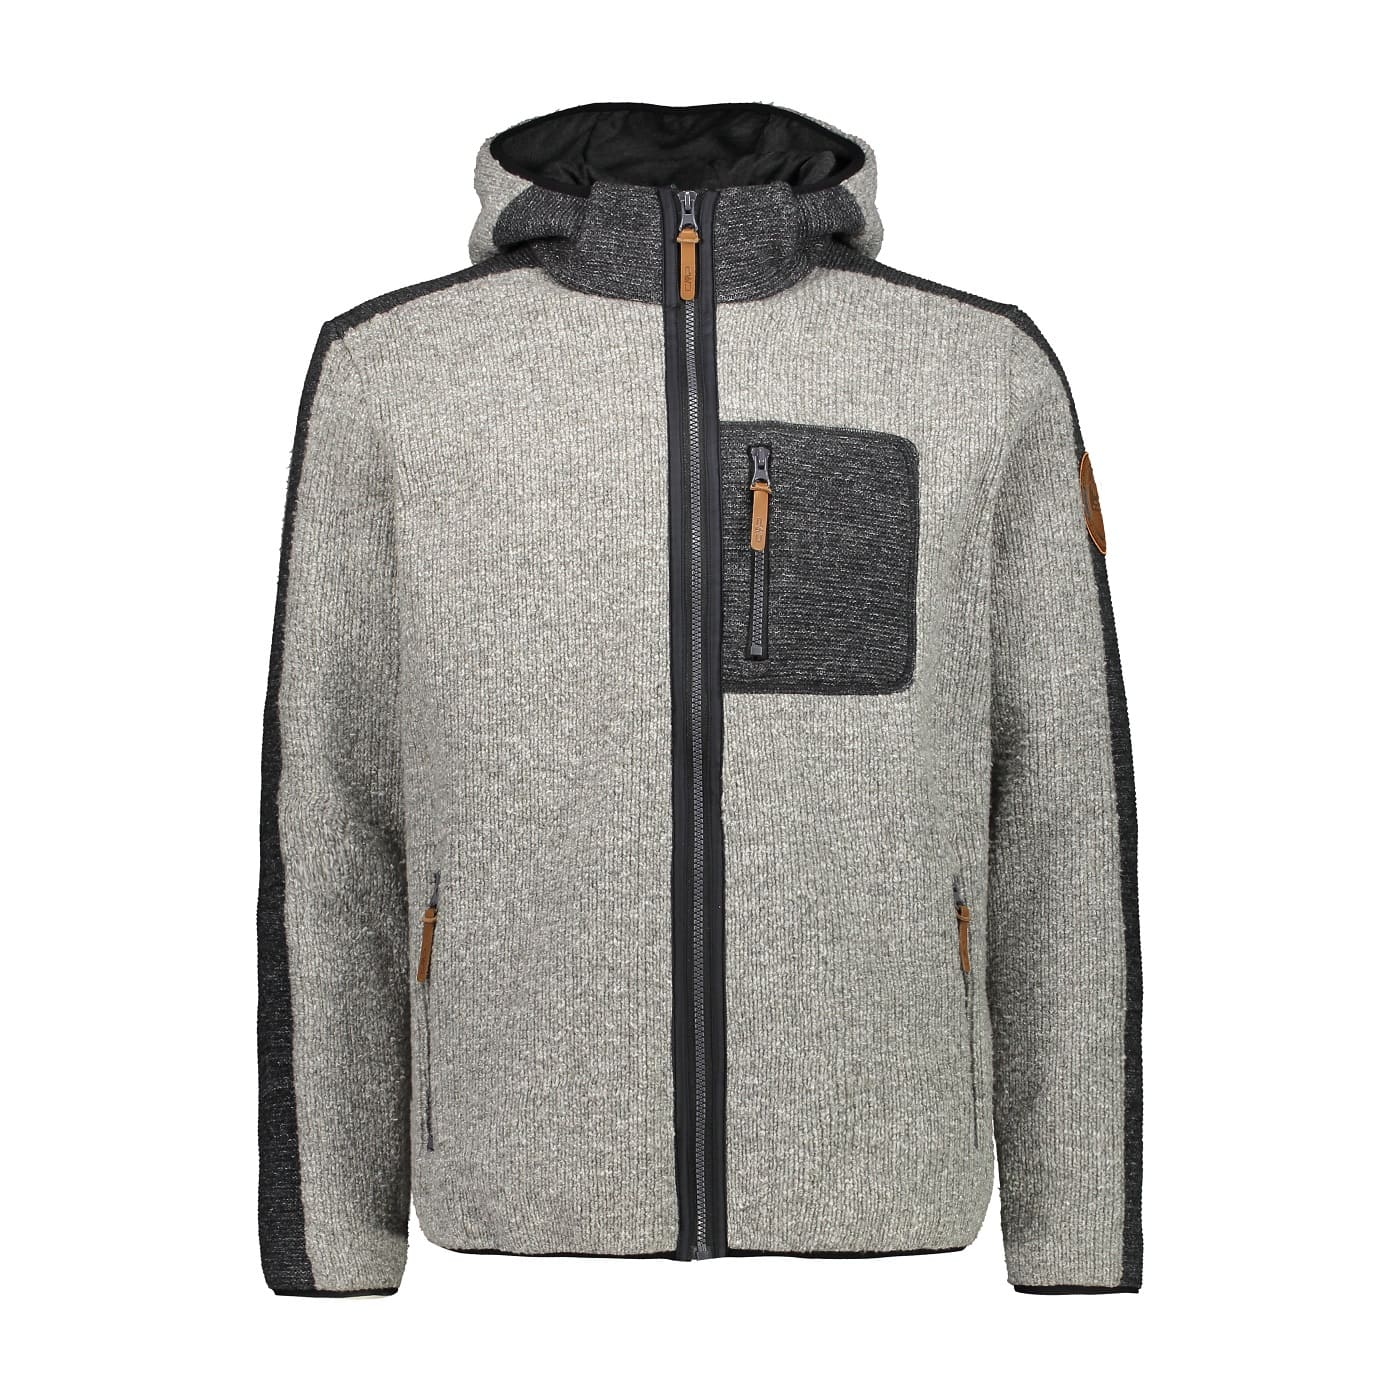 CMP MAN JACKET FIX HOOD GREY MEL. - 50